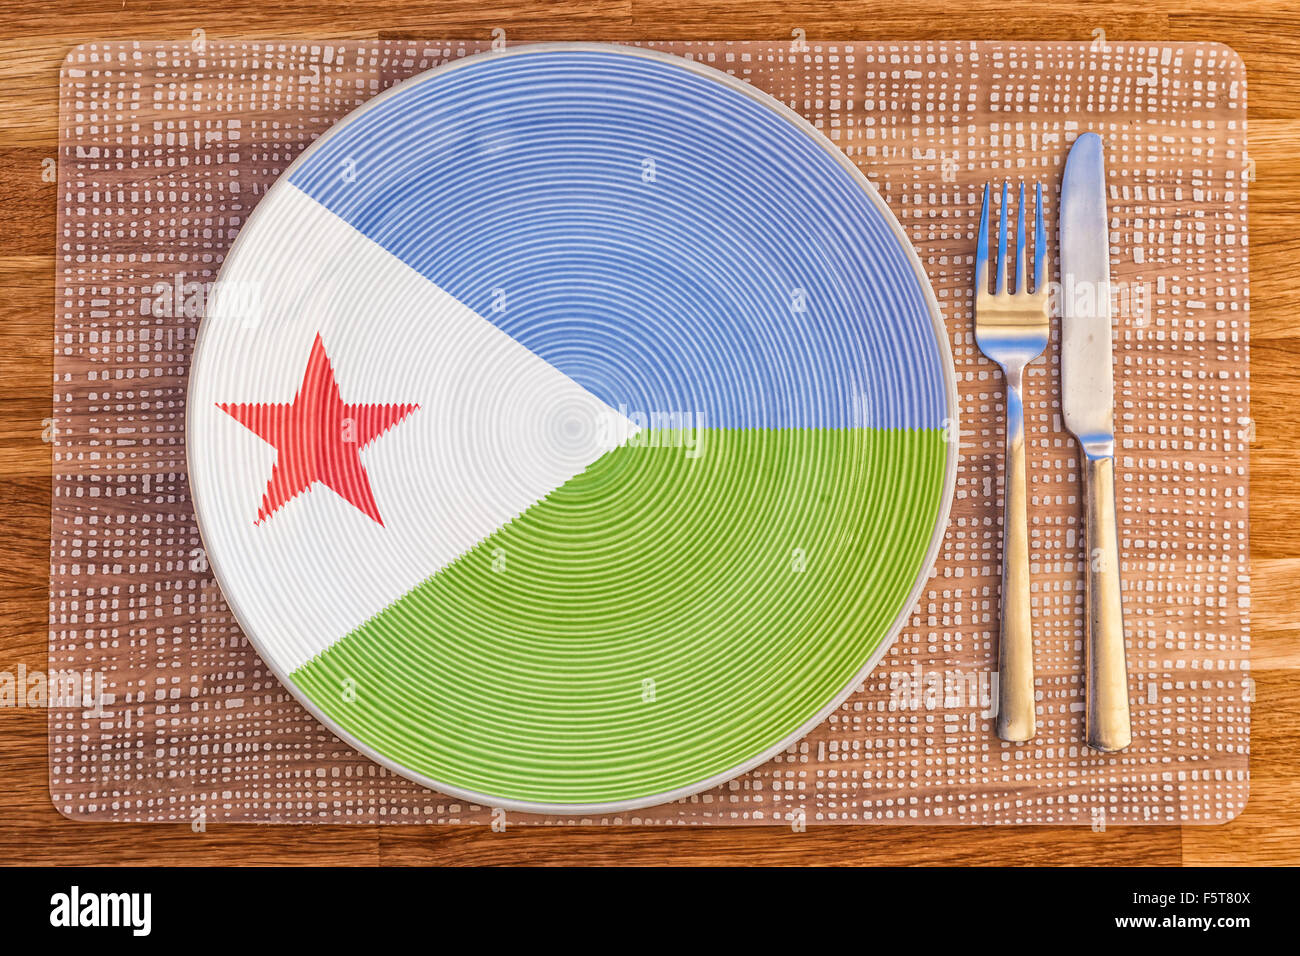 Dinner plate with the flag of Djibouti on it for your international food and drink concepts. - Stock Image